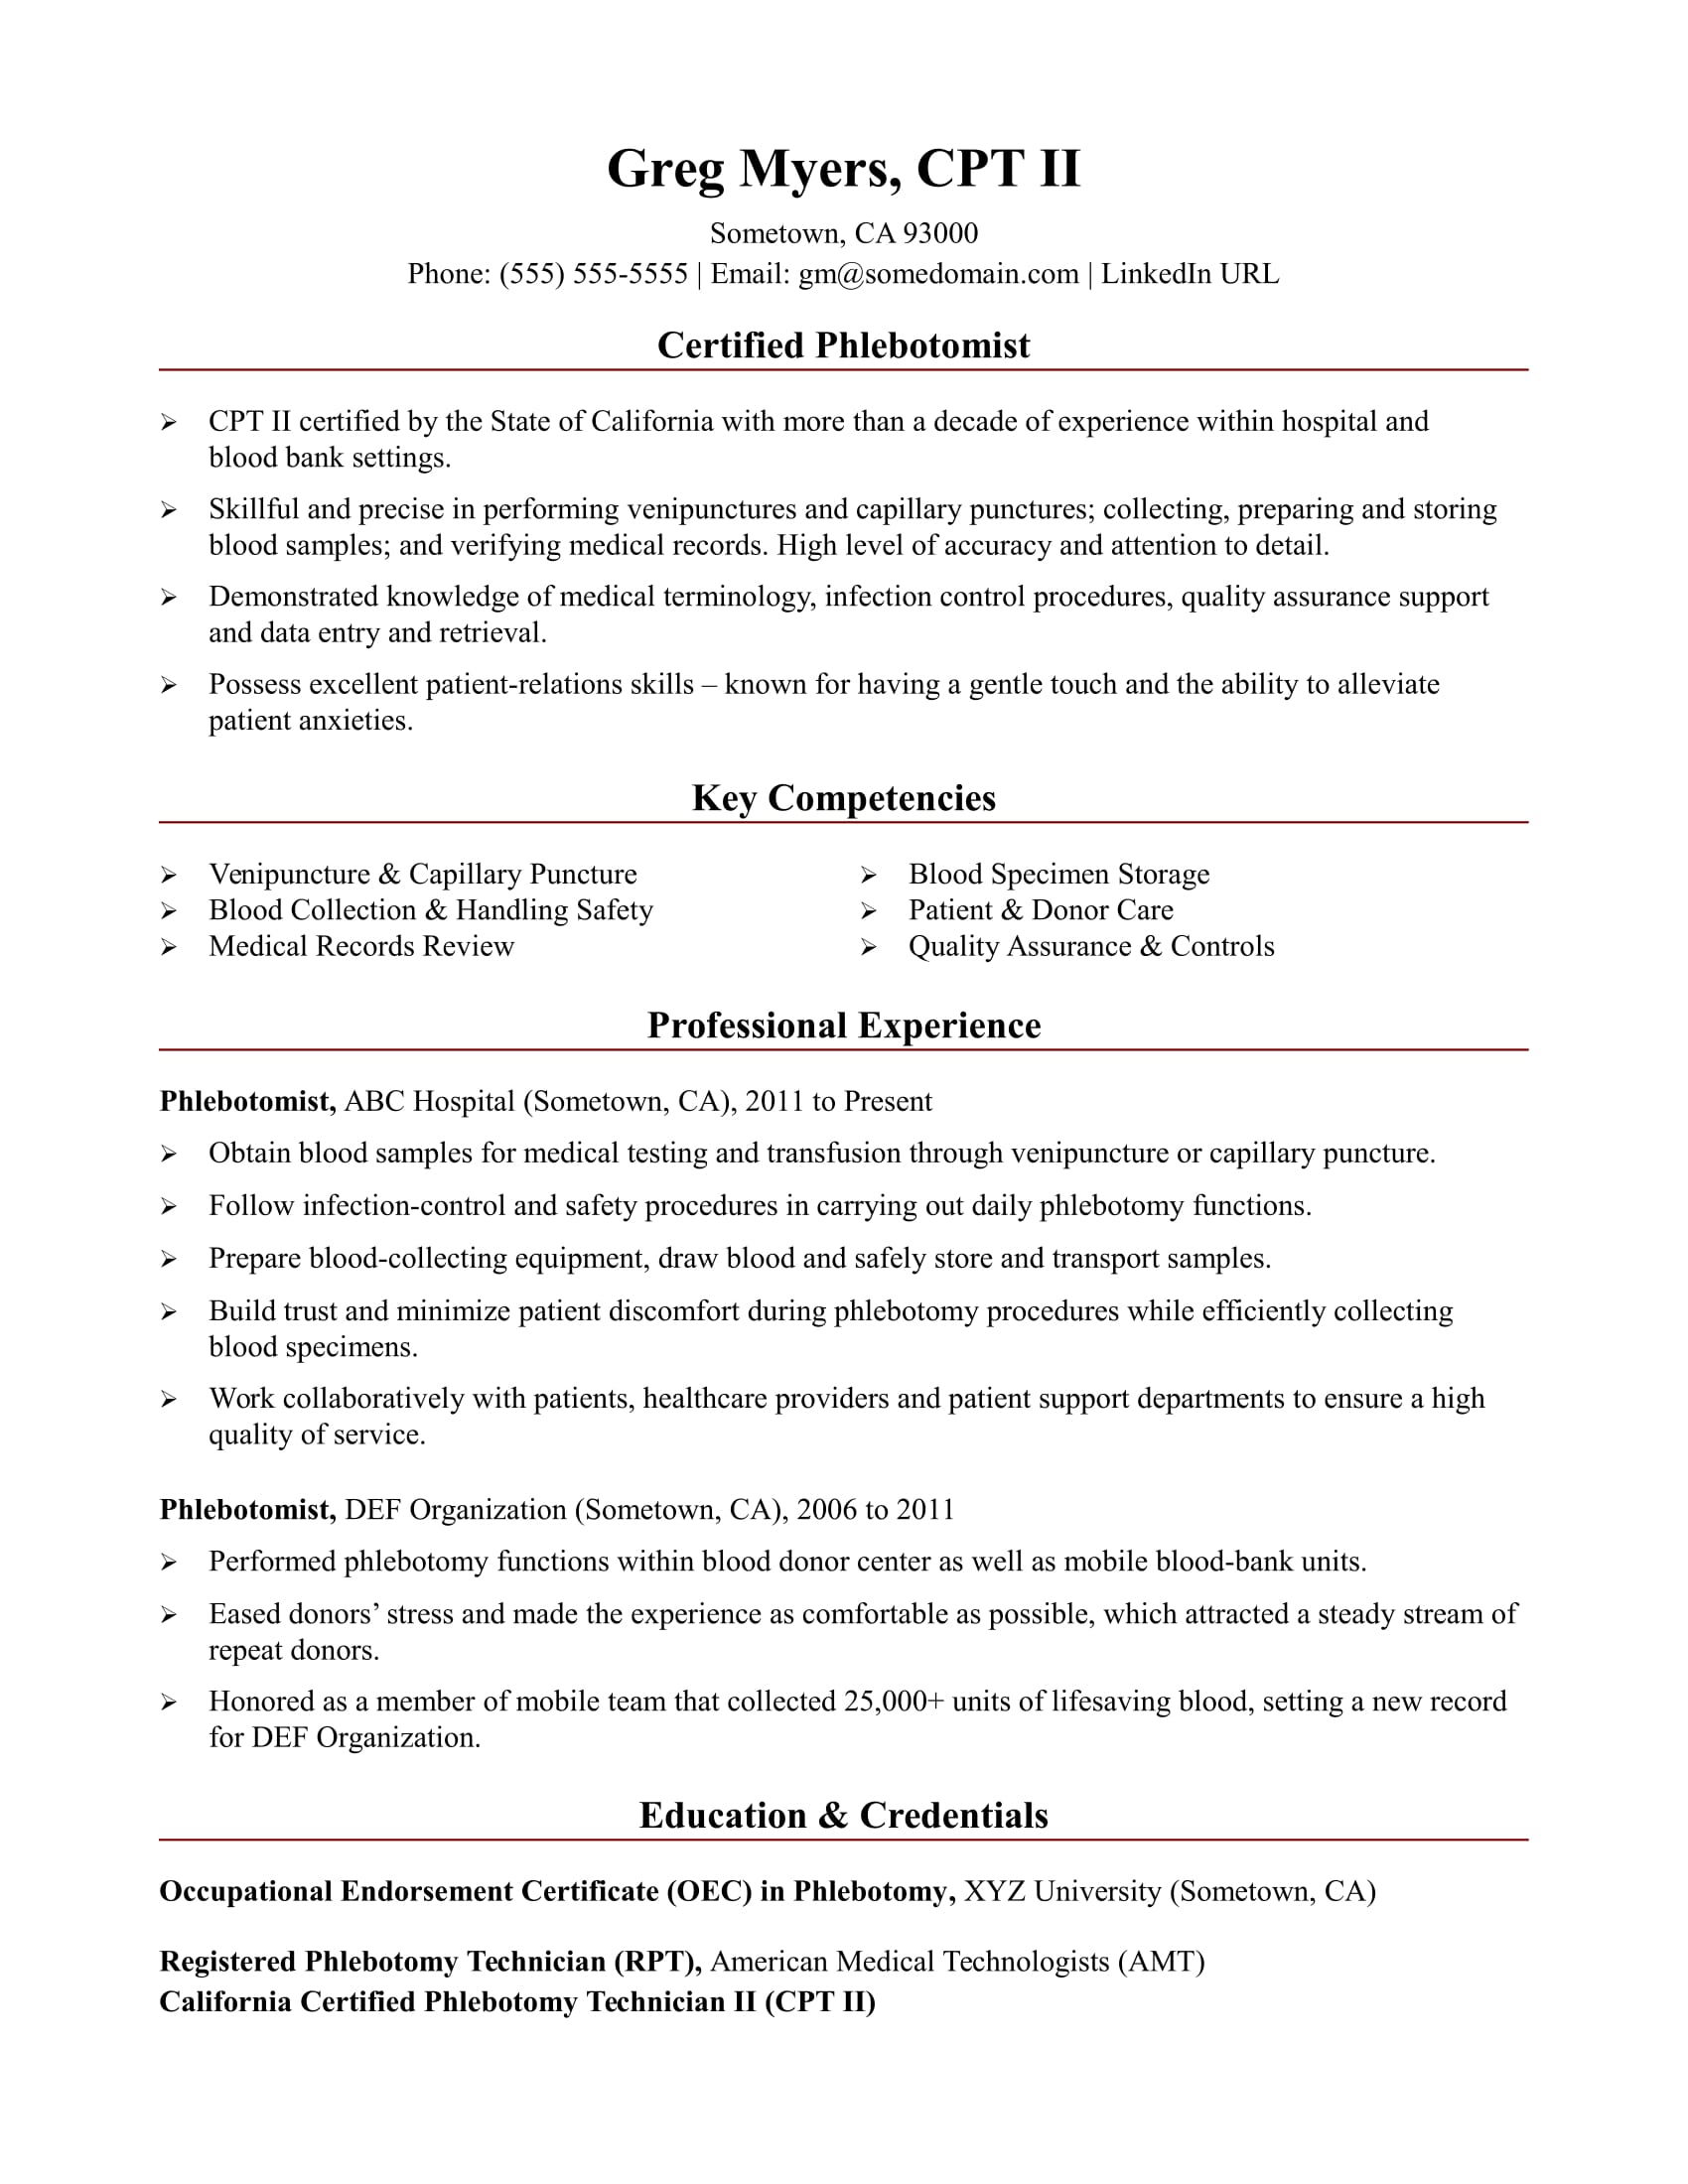 Charming Sample Resume For A Phlebotomist Throughout Sample Phlebotomist Resume